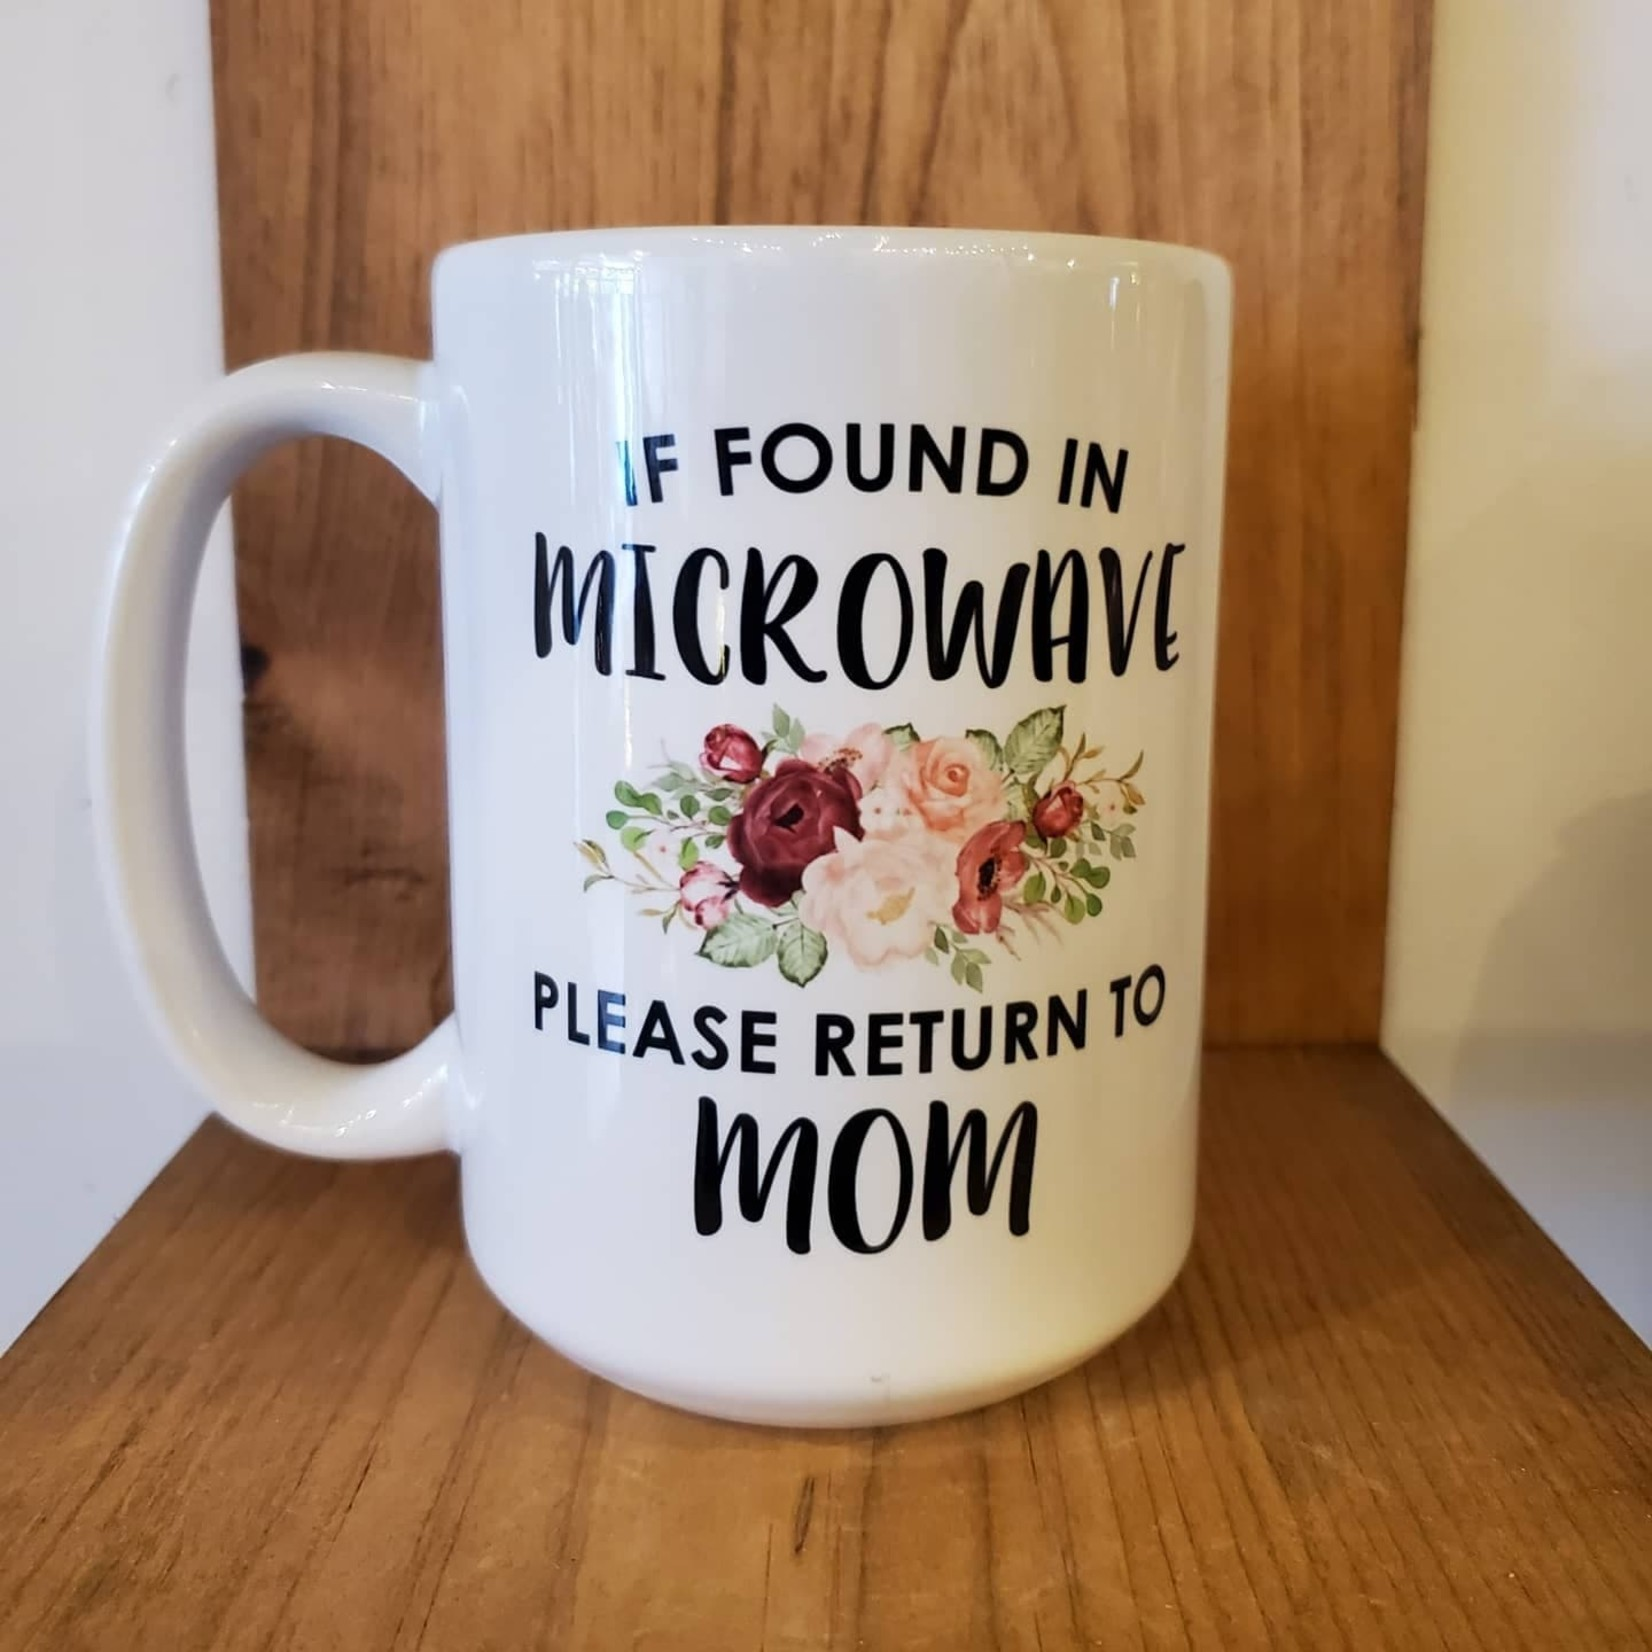 favourite things apparel If found in microwave please return to mom mug